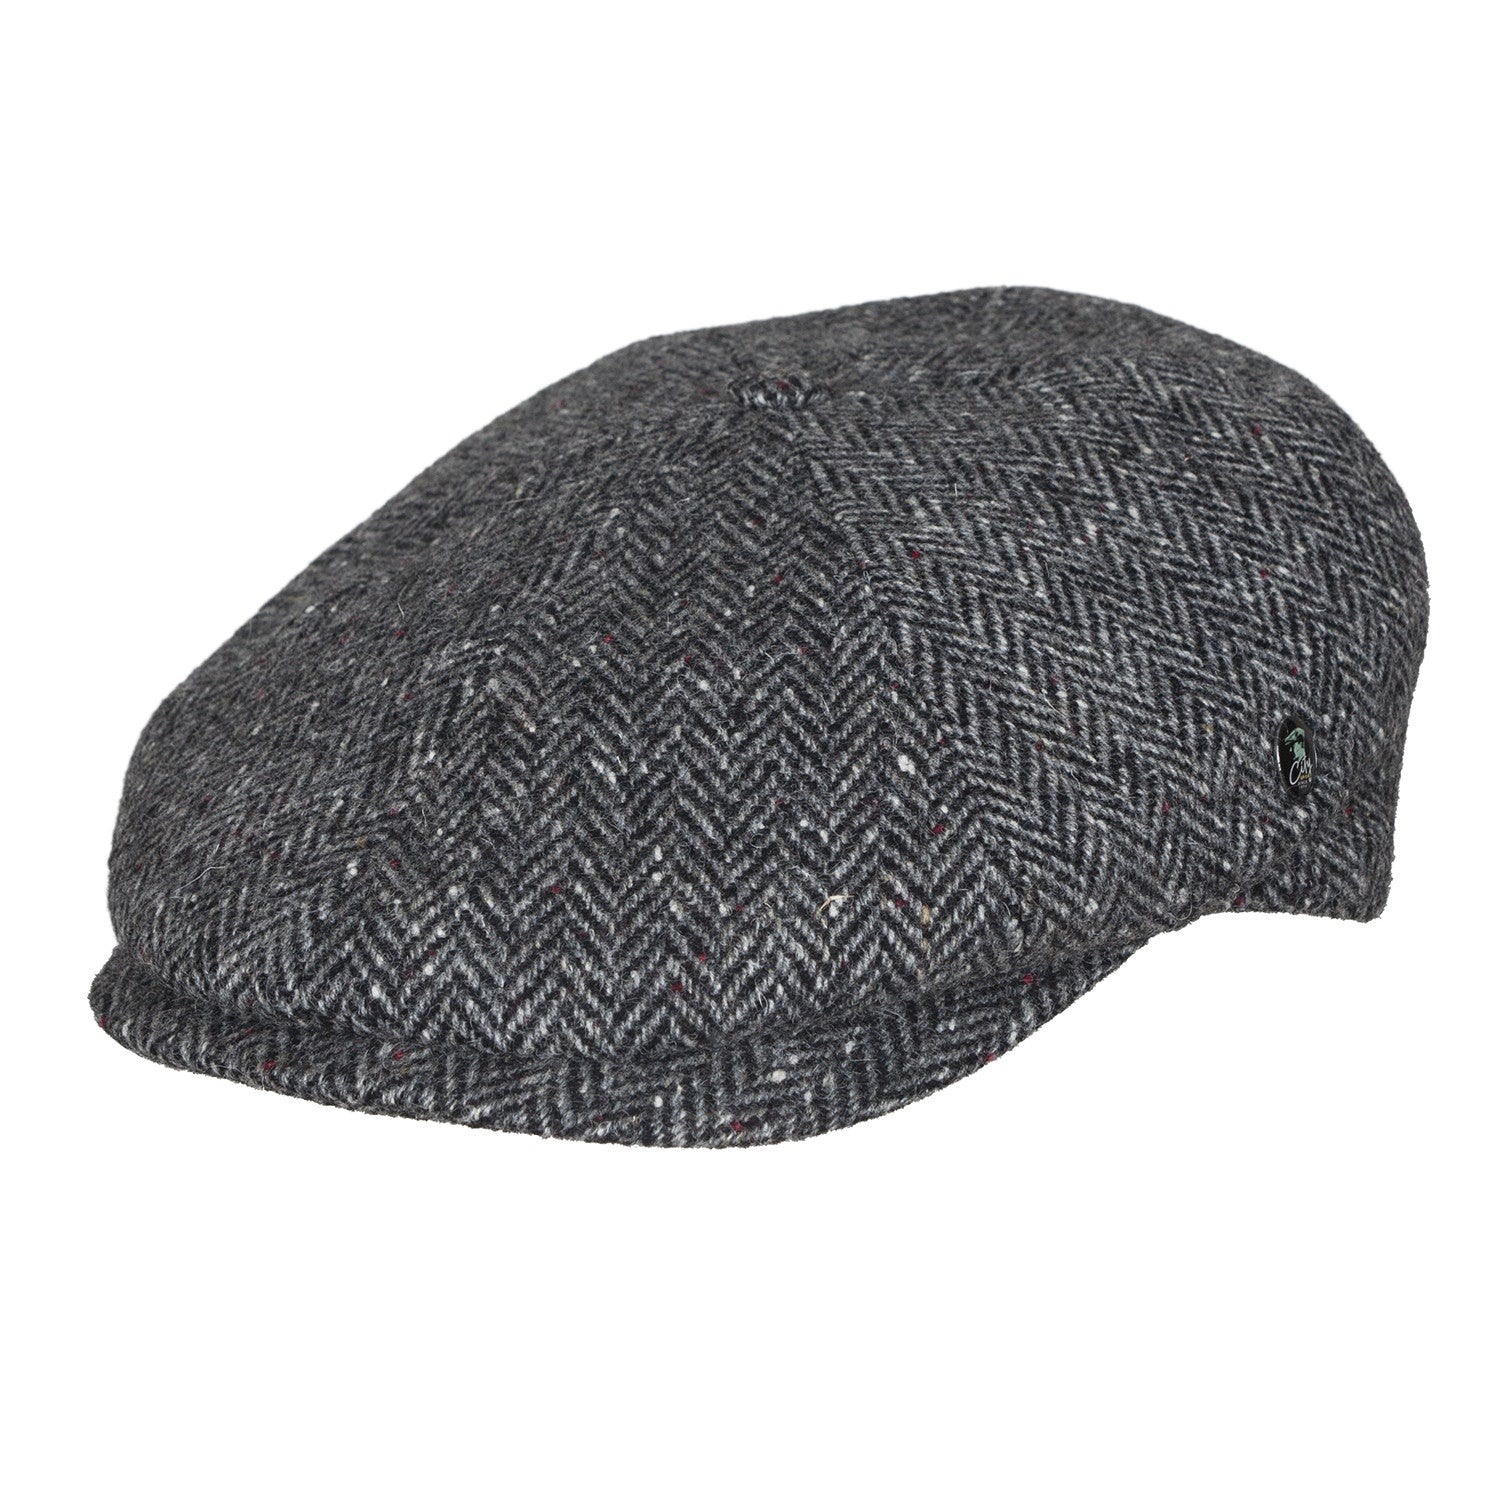 Donegal Tweed newsboy cap | Grey Herringbone | buy now at The Cashmere Choice London